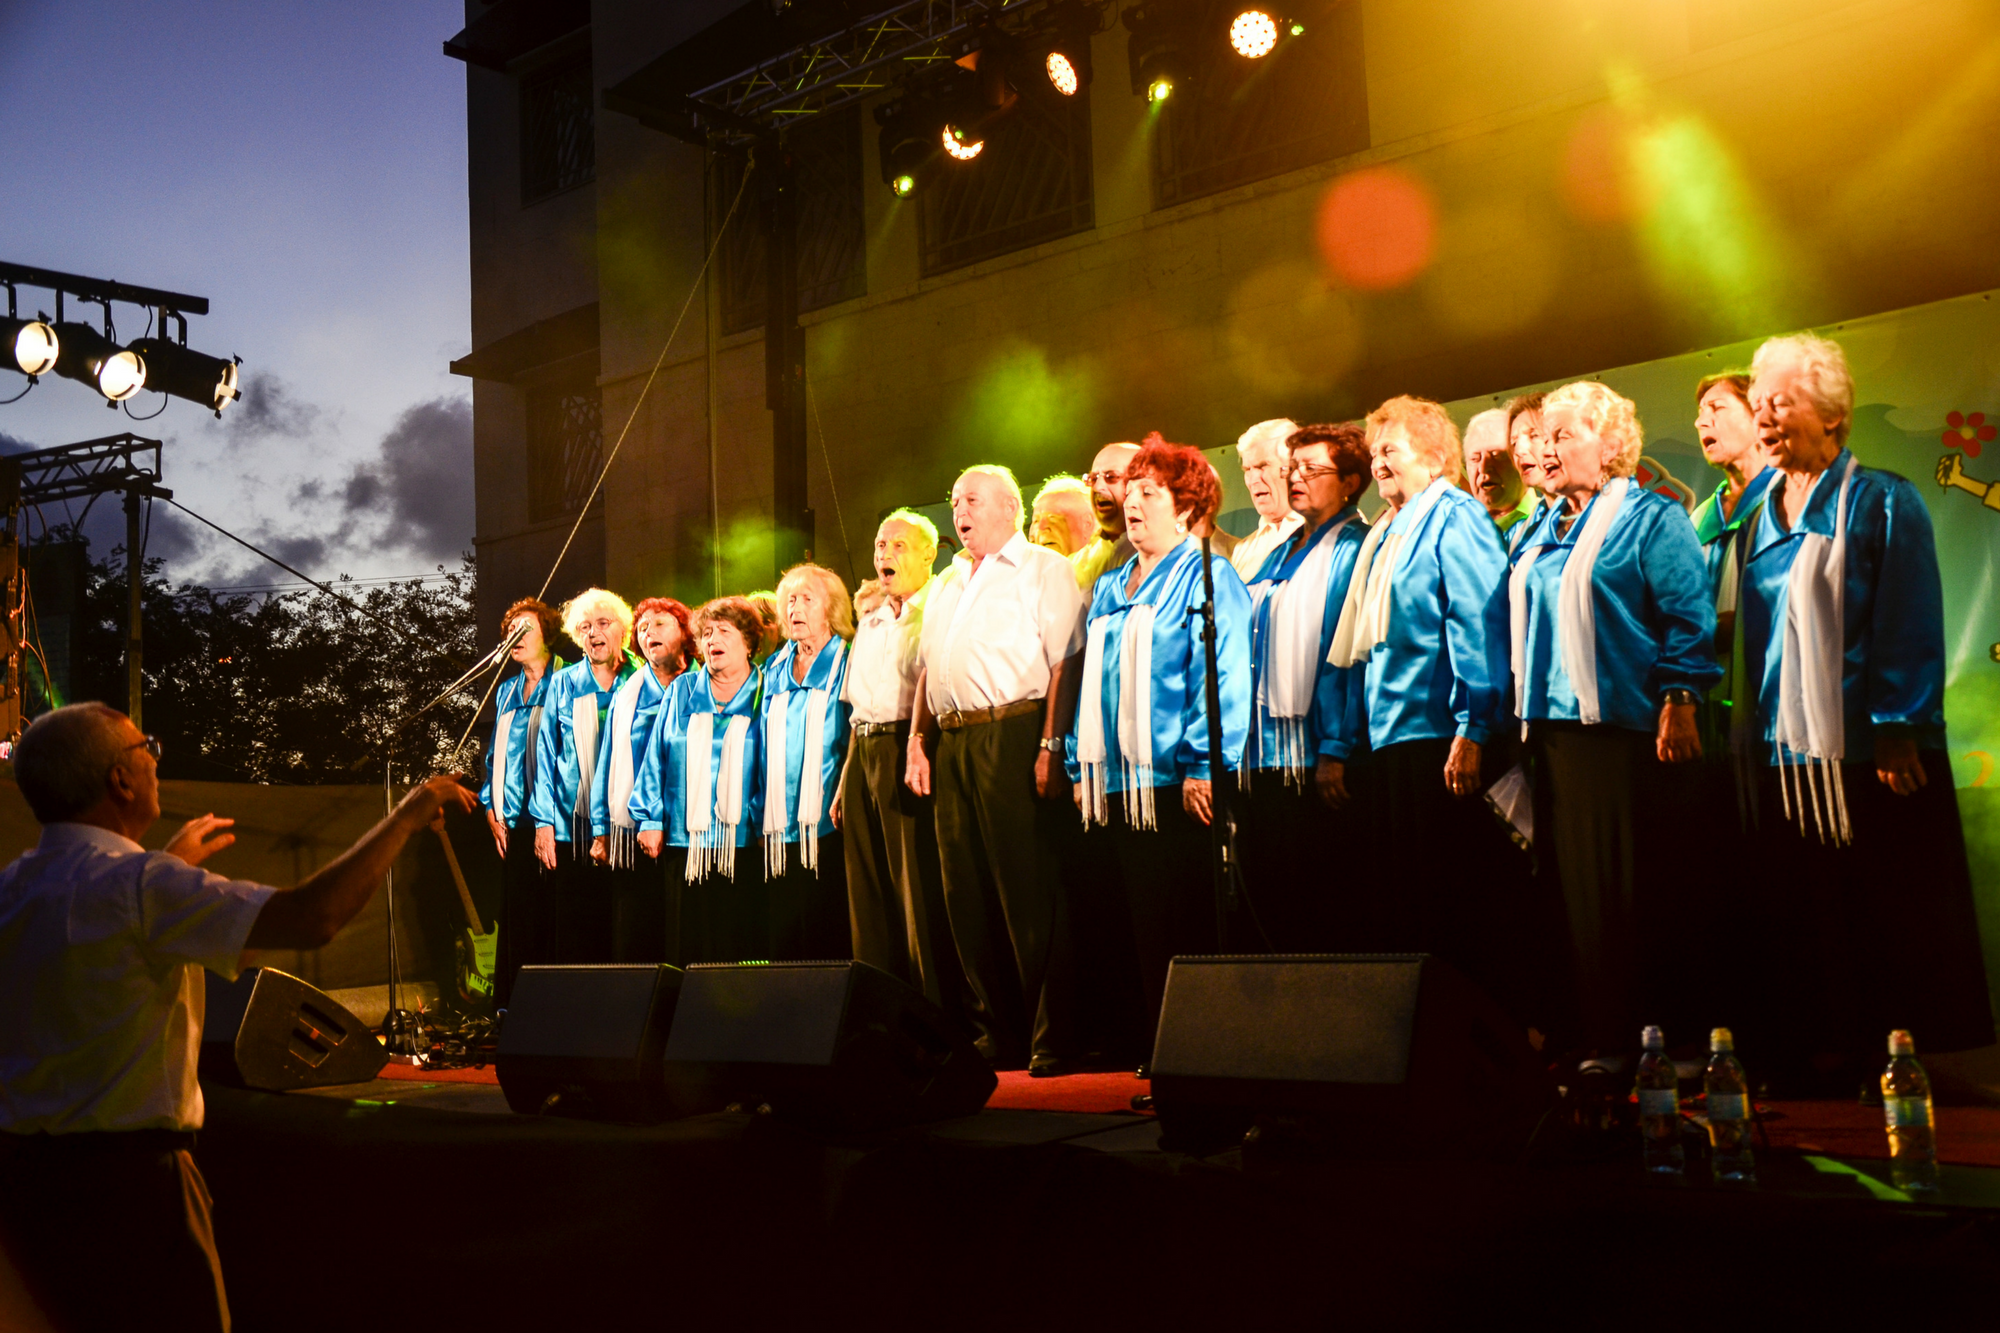 'Song of the Heart' Choir